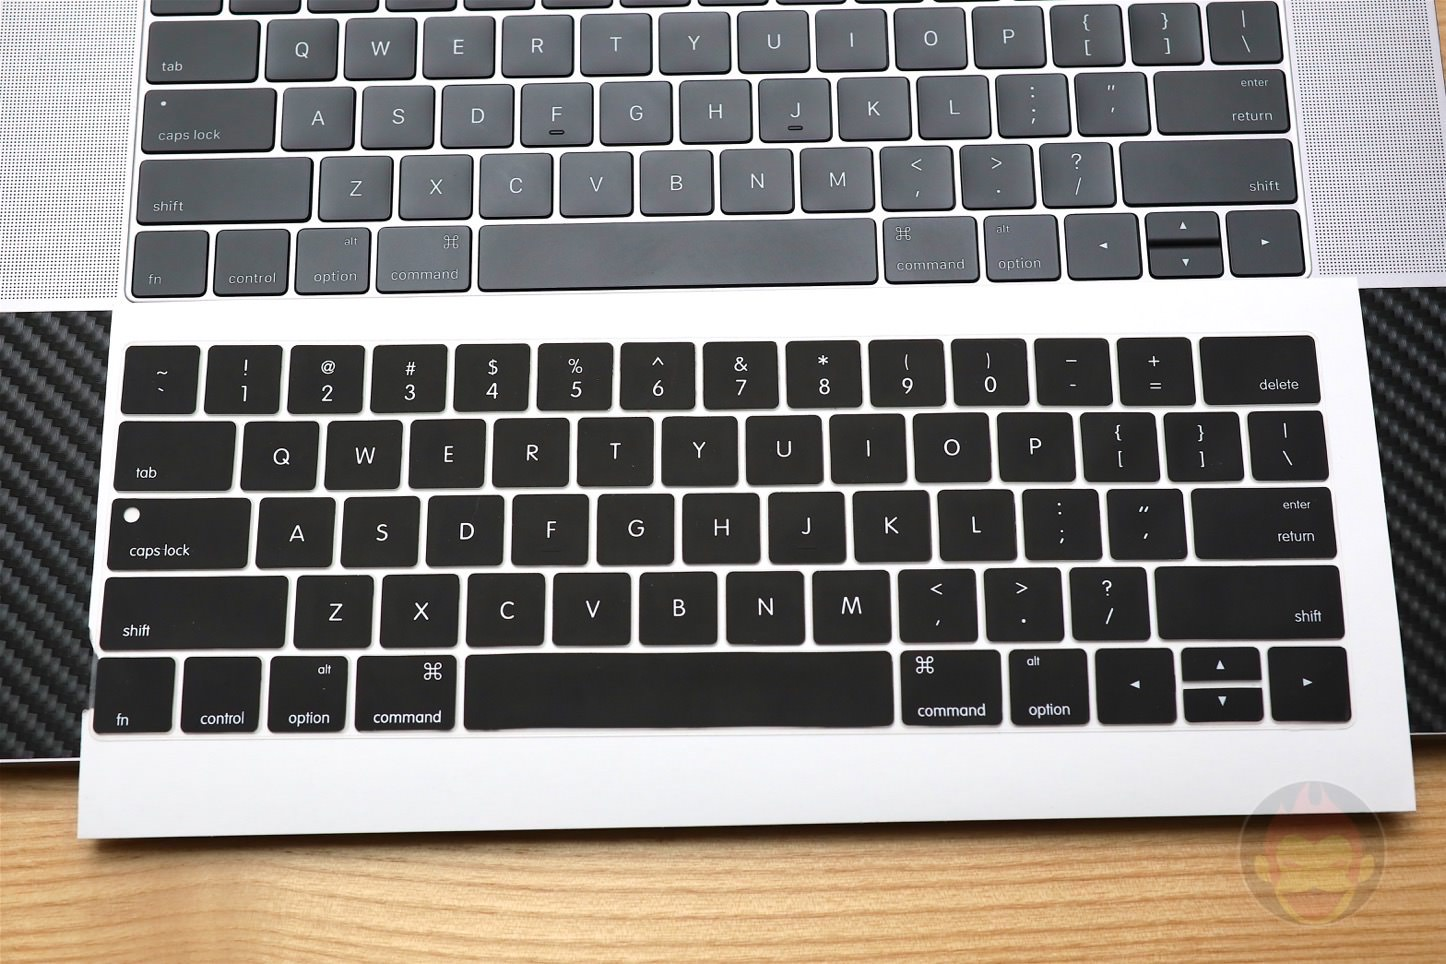 MaxKu Keyboard Cover for US Keyboard